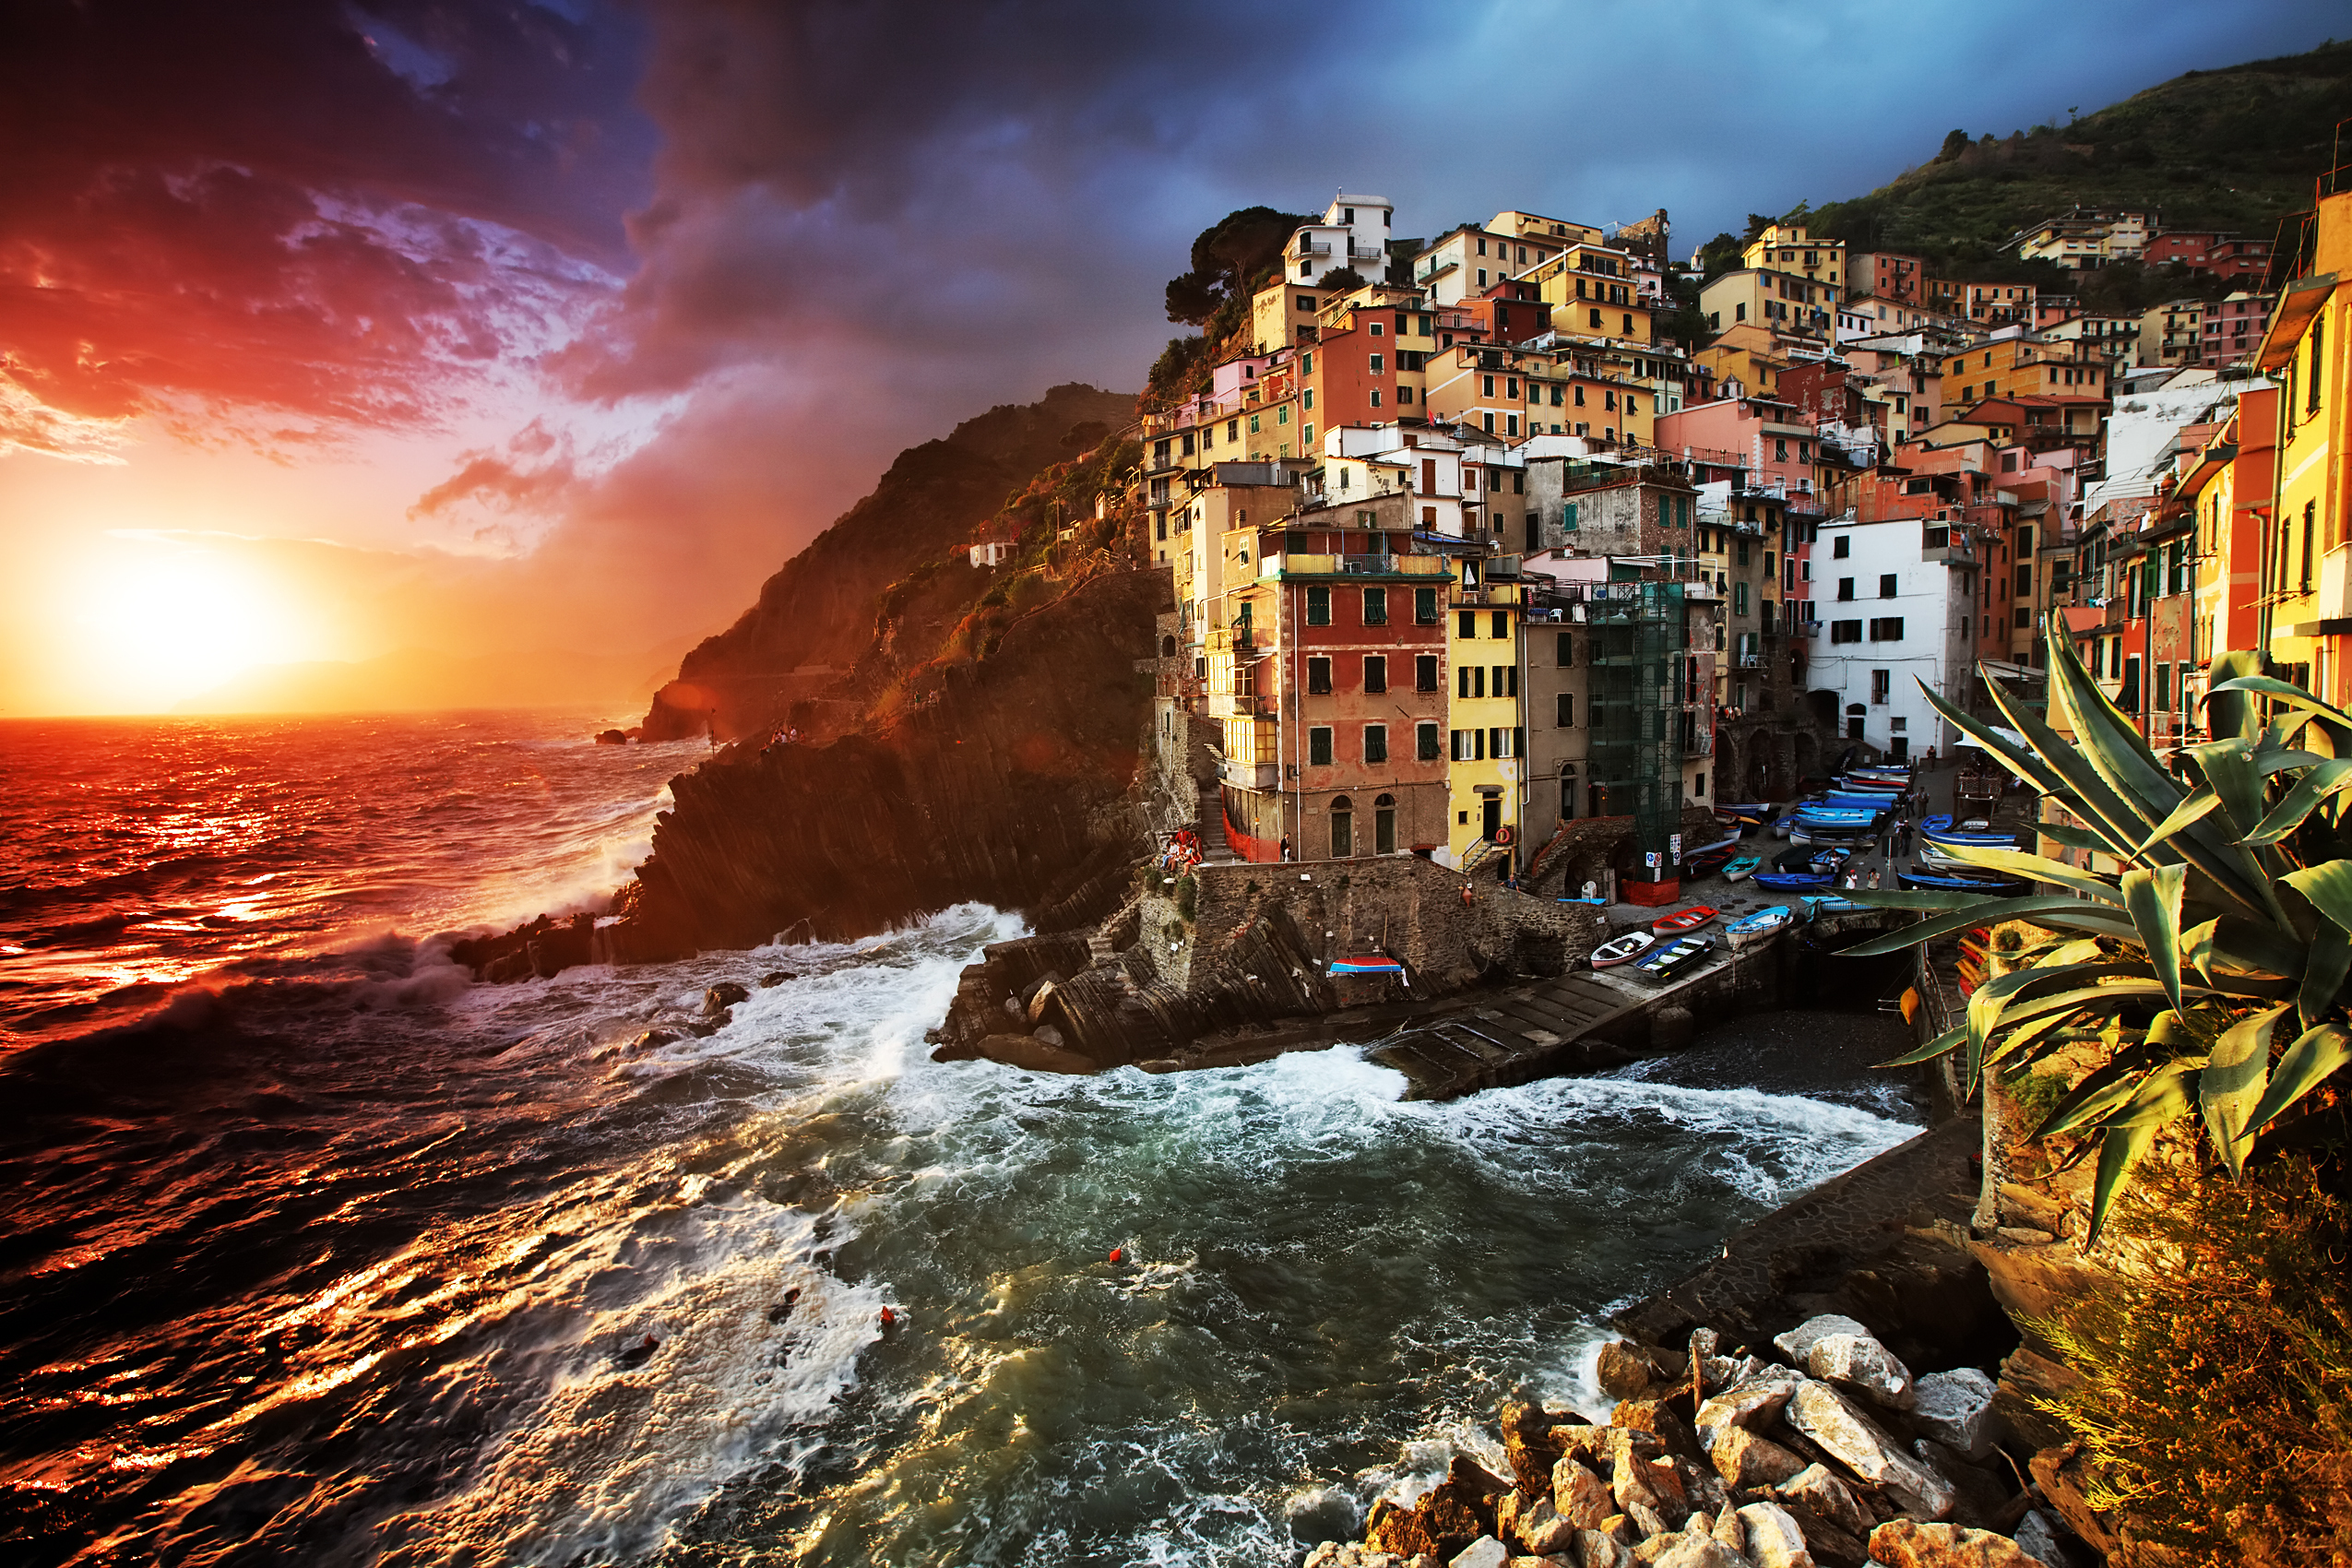 The Cinque Terre is No. 1 With Travellers